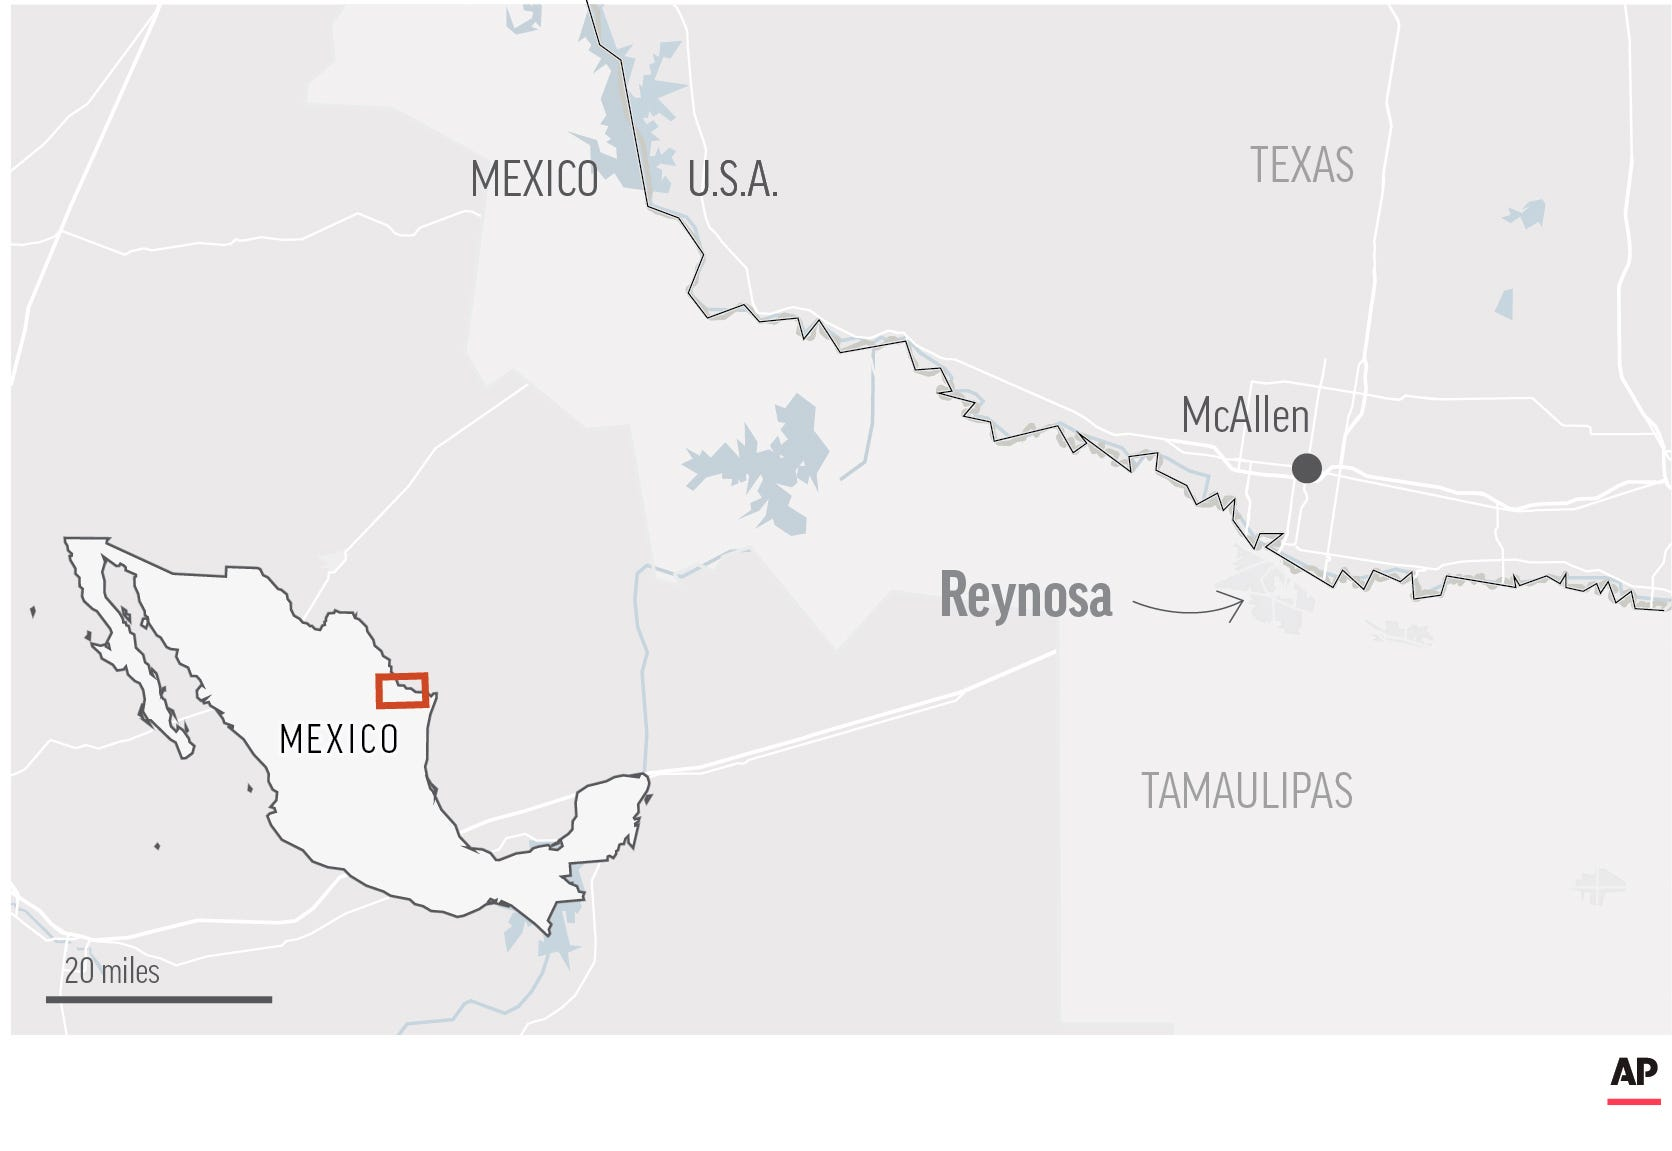 At least 18 killed in violence near US-Mexico border 2